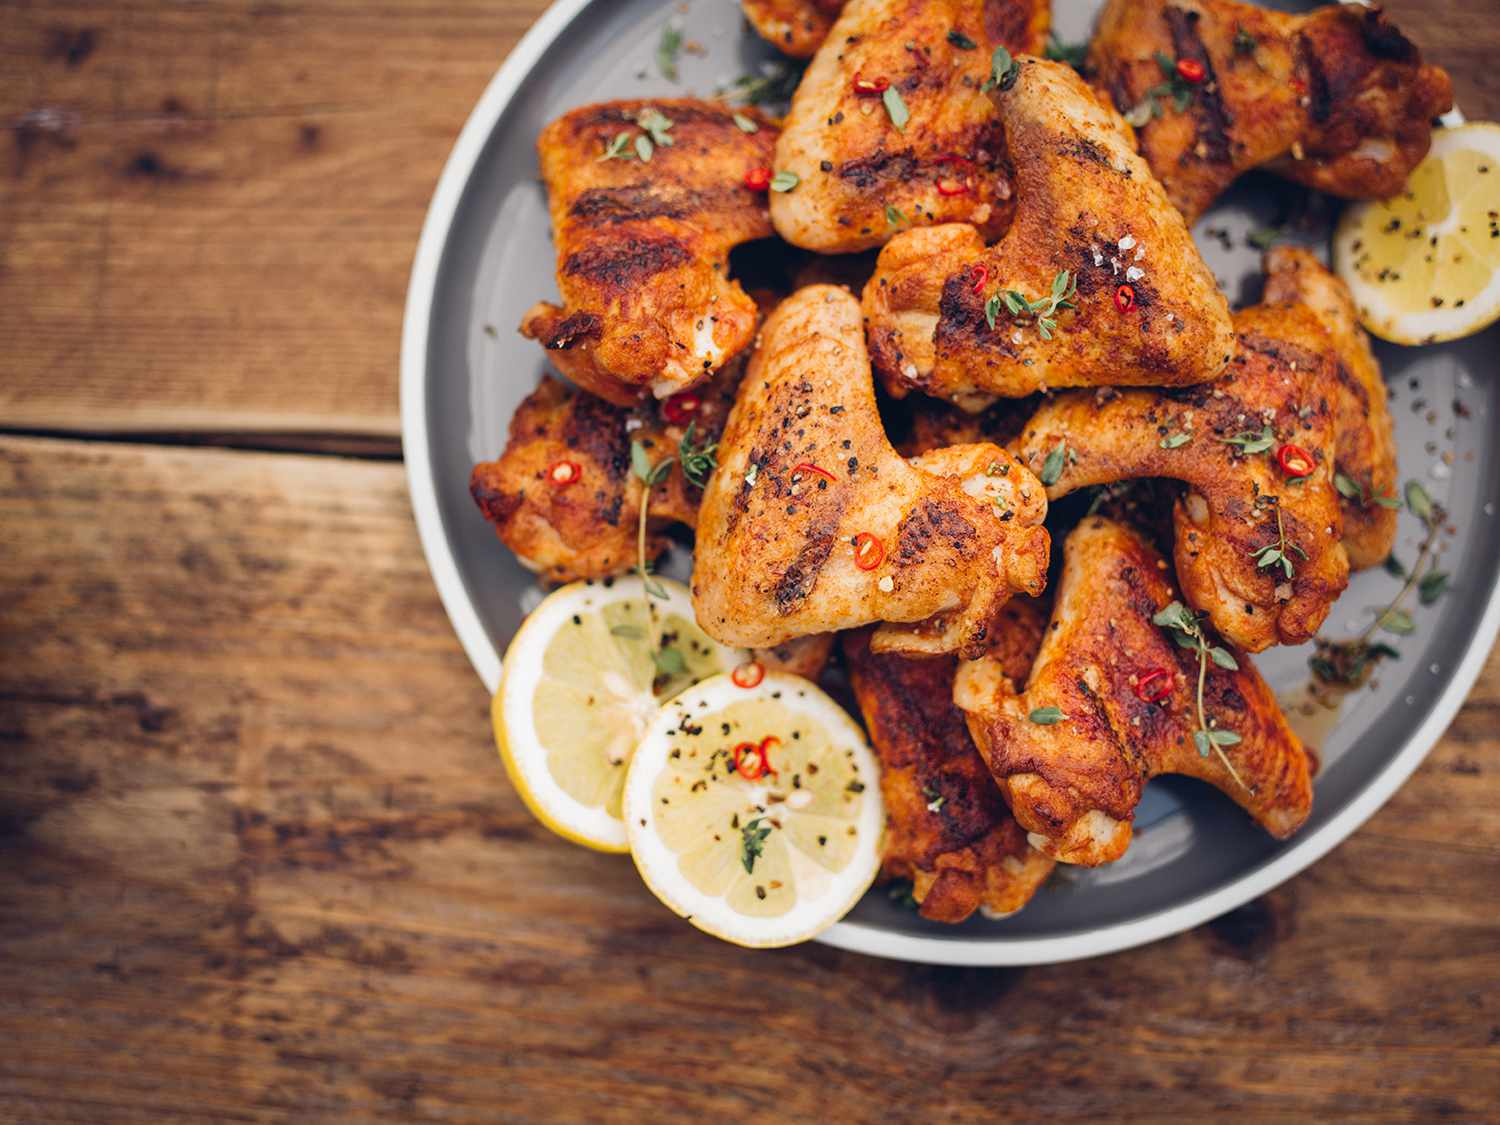 Crispy chillie sprinkled chicken wings on a plate